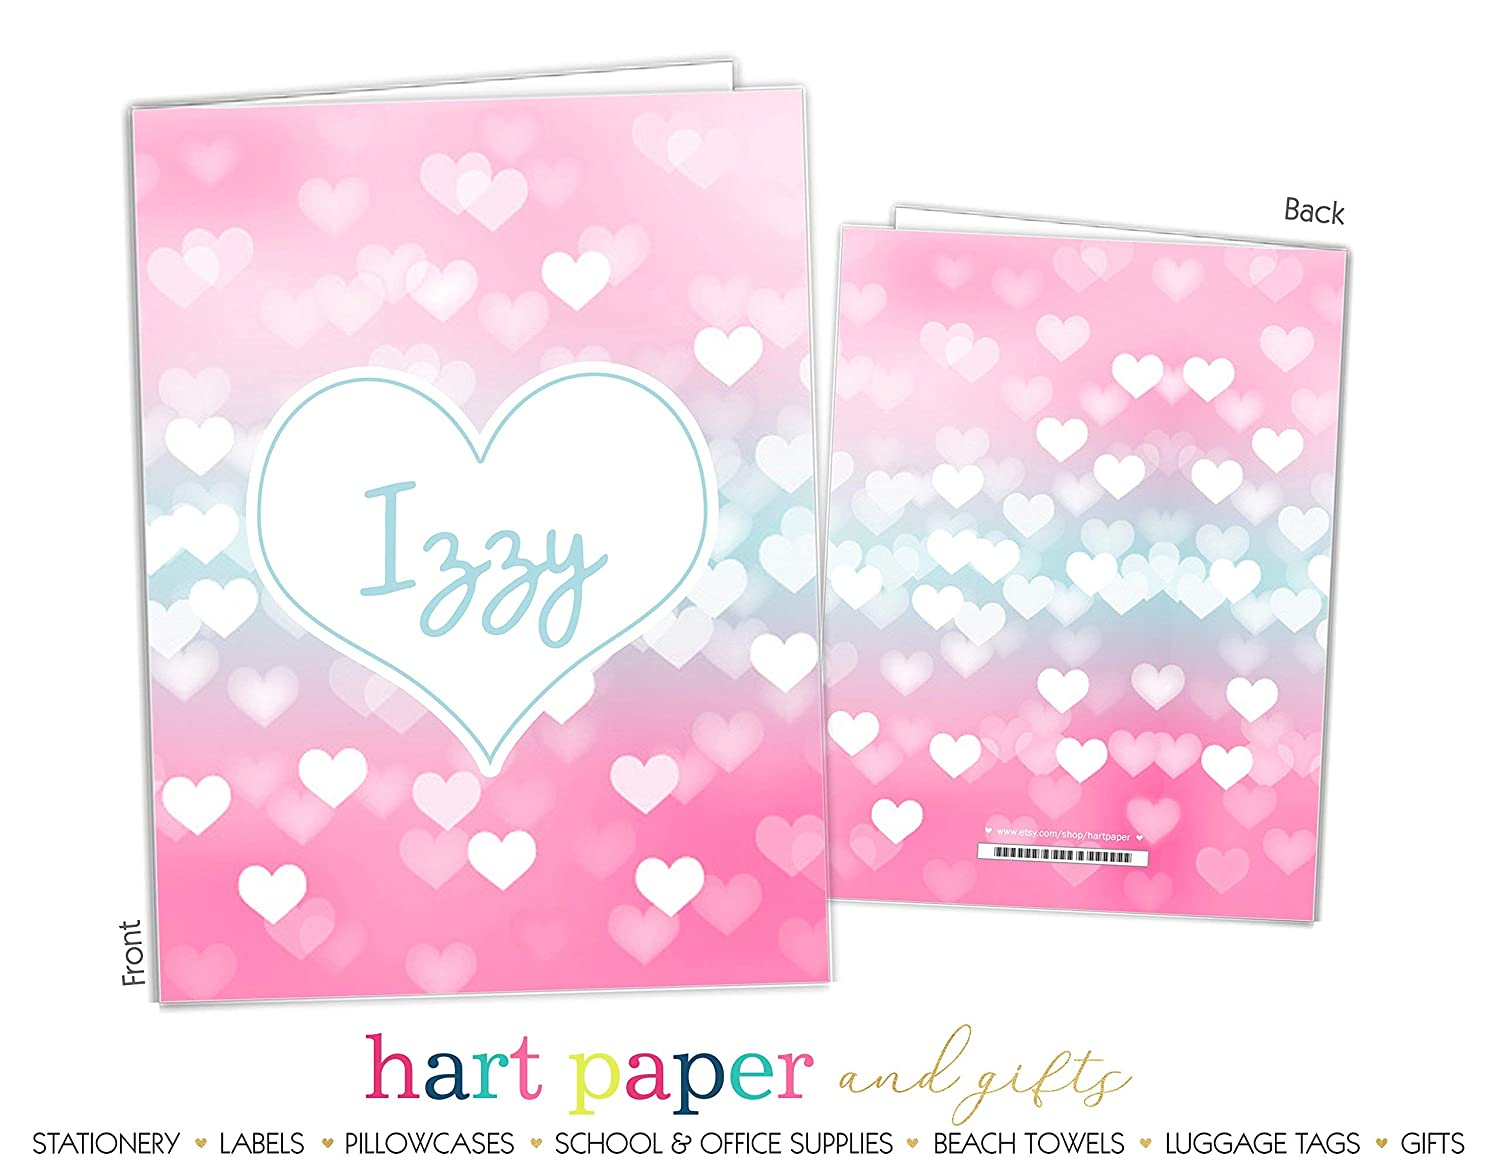 Pink Teal Heart Sparkles 2 Pocket Folder Gift Name Back to School Supplies Teacher Office Birthday Girl Boy Adult Kids Custom Personalized Custom